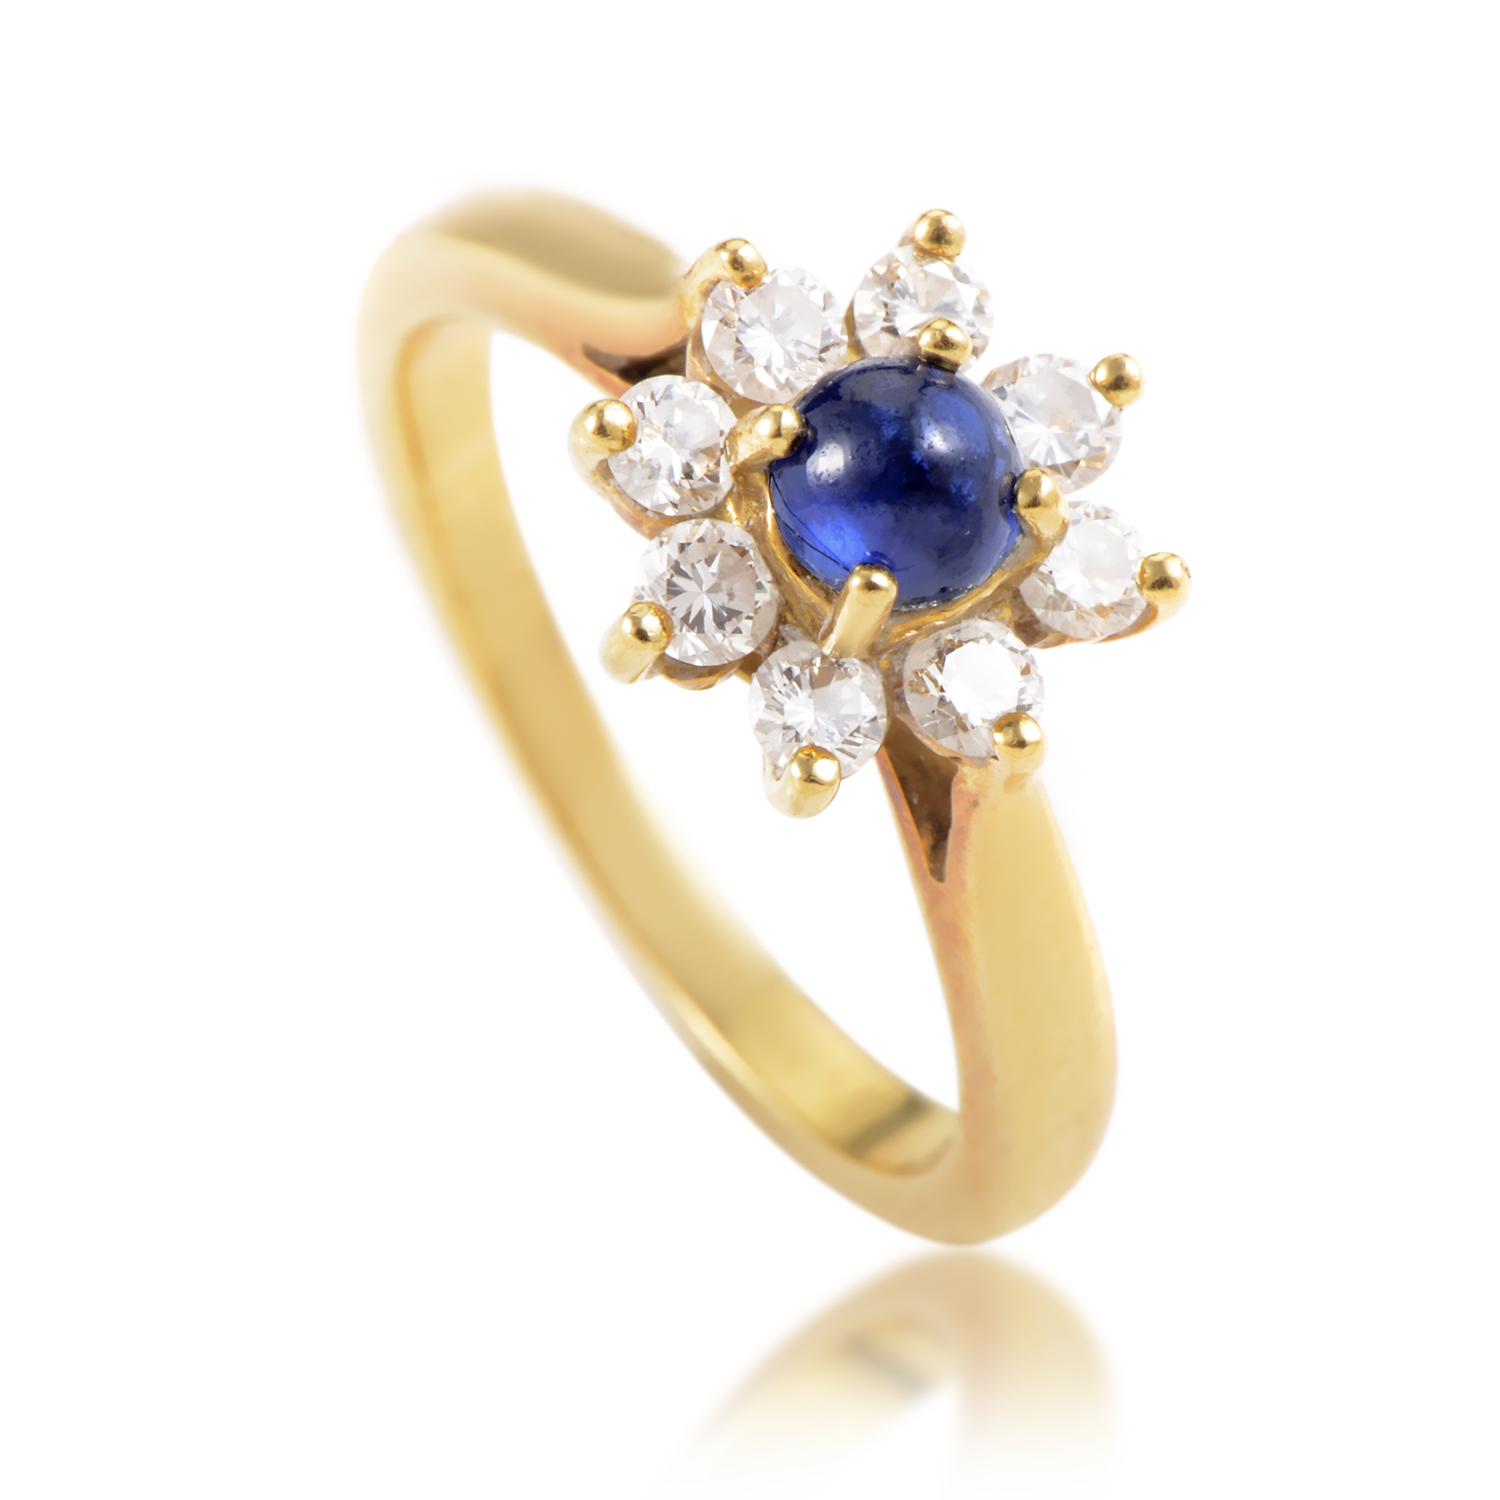 Tiffany & Co. 18K Yellow Gold Diamond and Sapphire Flower Ring